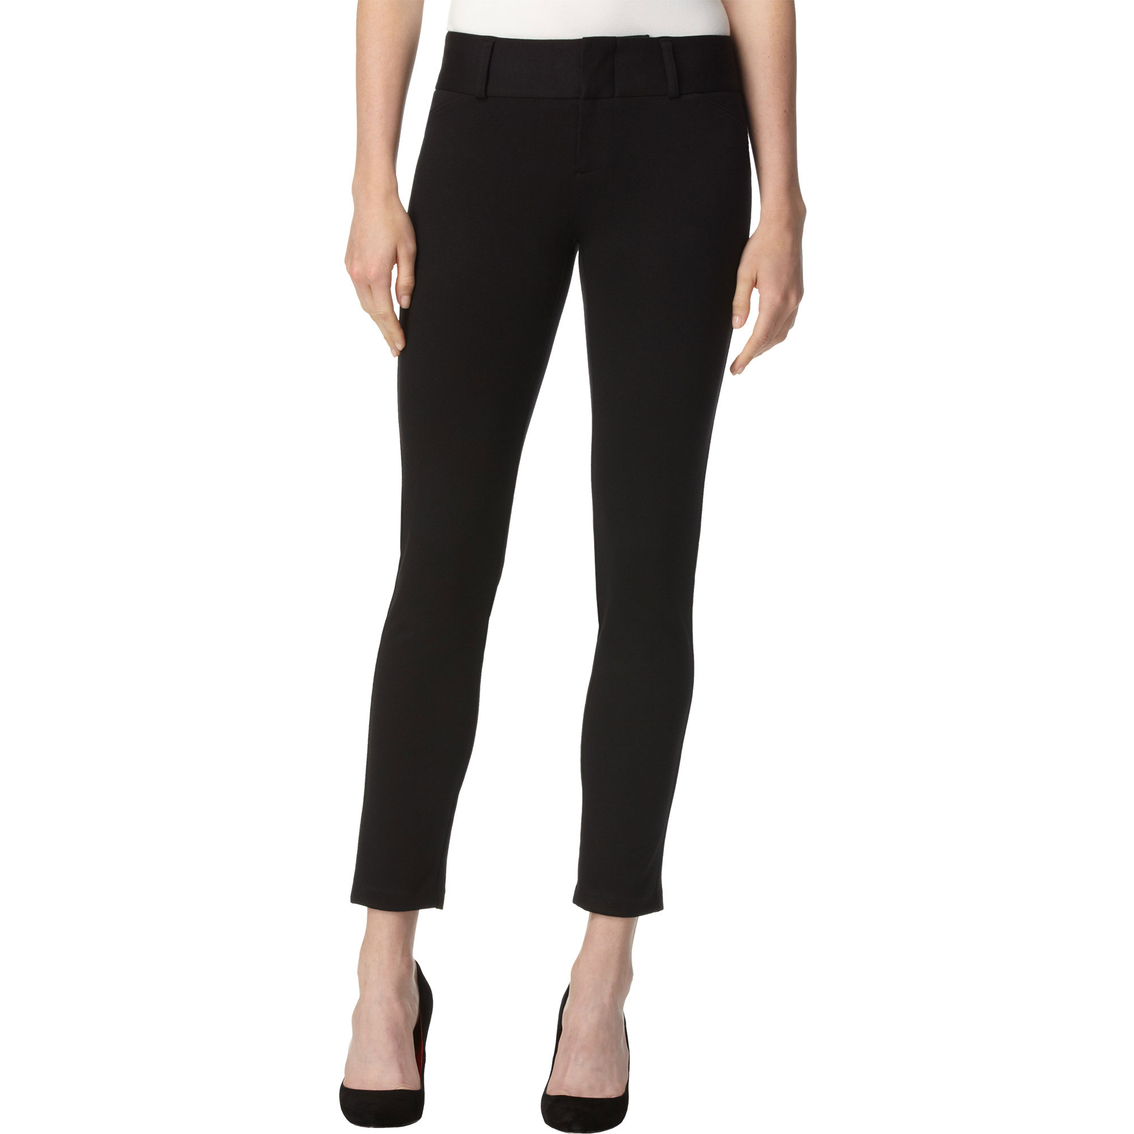 Michael Kors Petite Ponte Ankle Pants | Apparel | Apparel | Shop ...